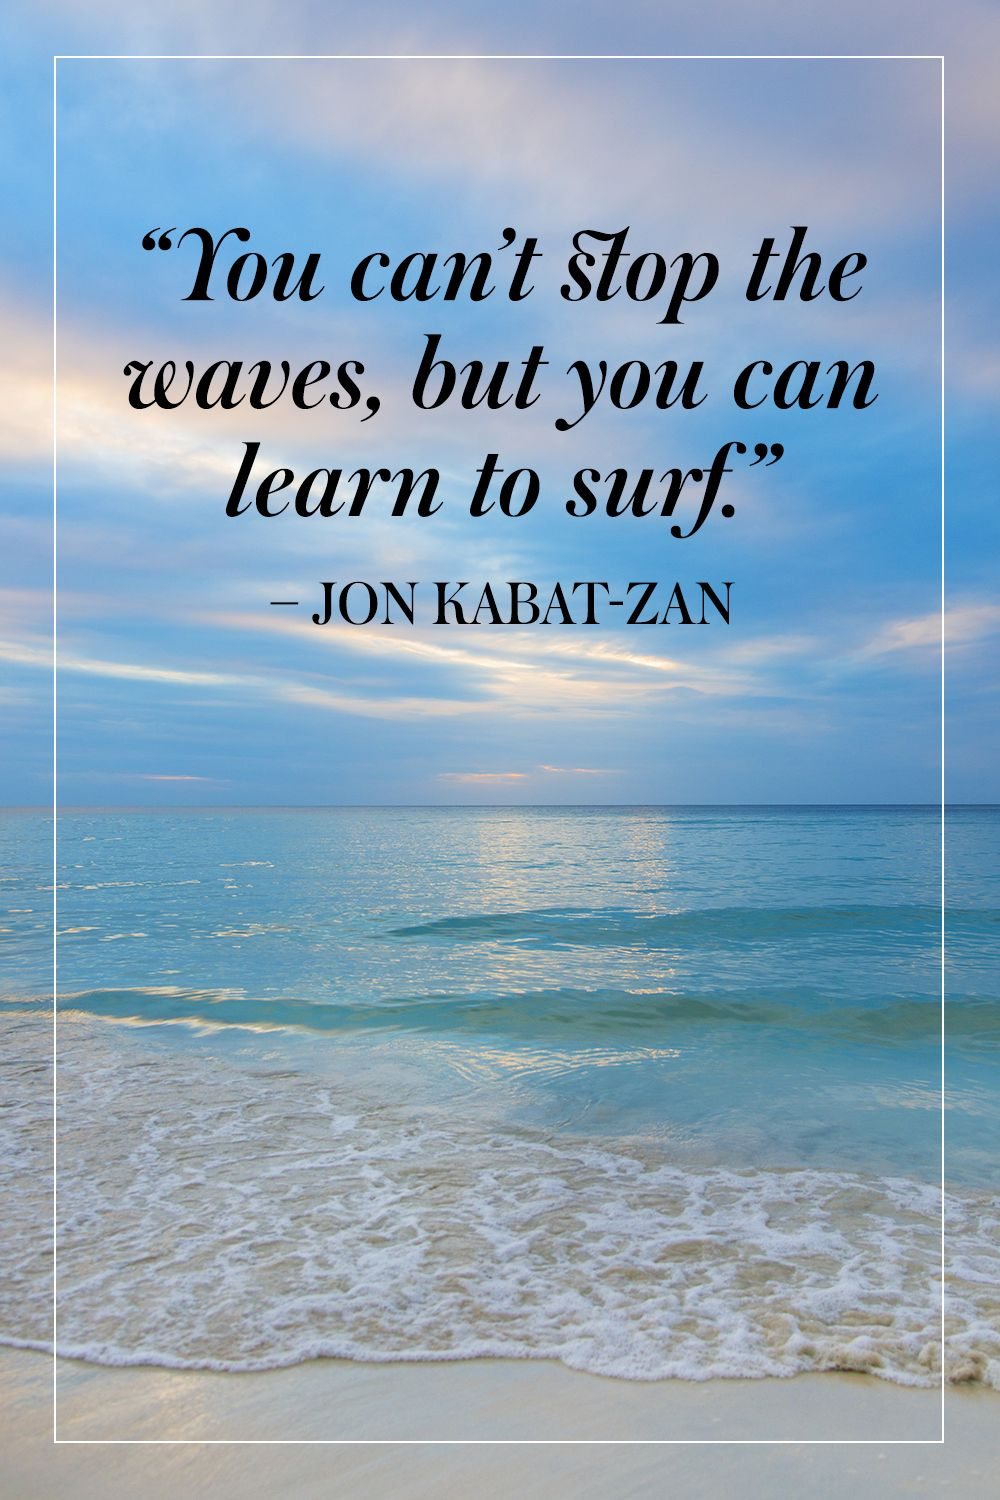 Beach Inspirational Quotes 10 Inspiring Quotes About The Ocean | Inspiring Quotes | Ocean  Beach Inspirational Quotes